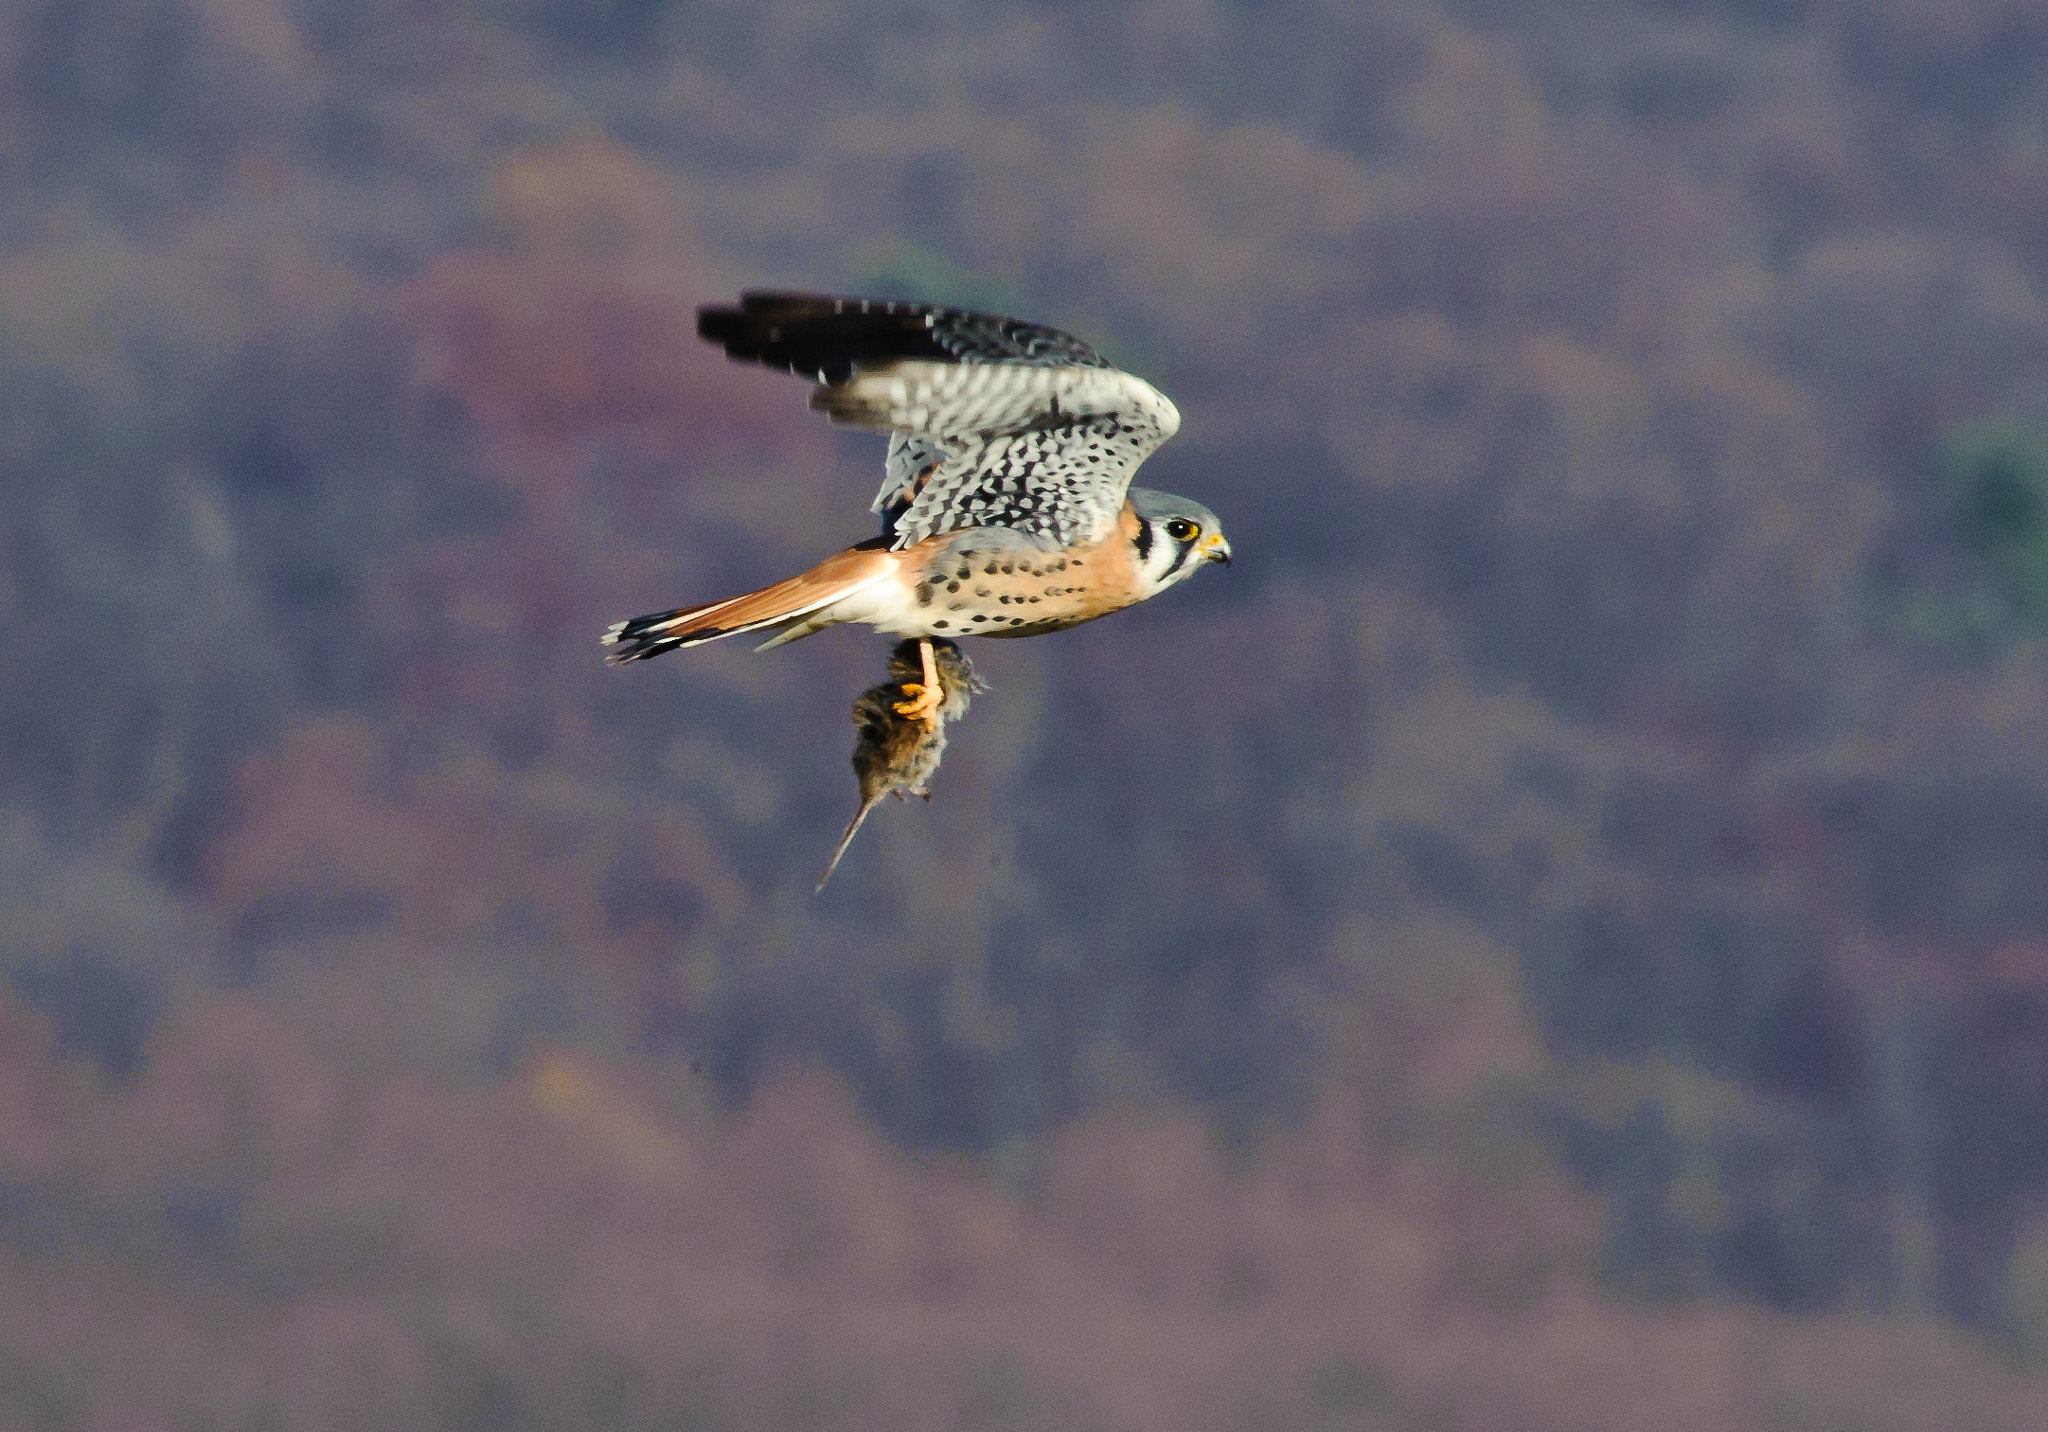 Photograph Kestrel with prey by Steven Kersting on 500px